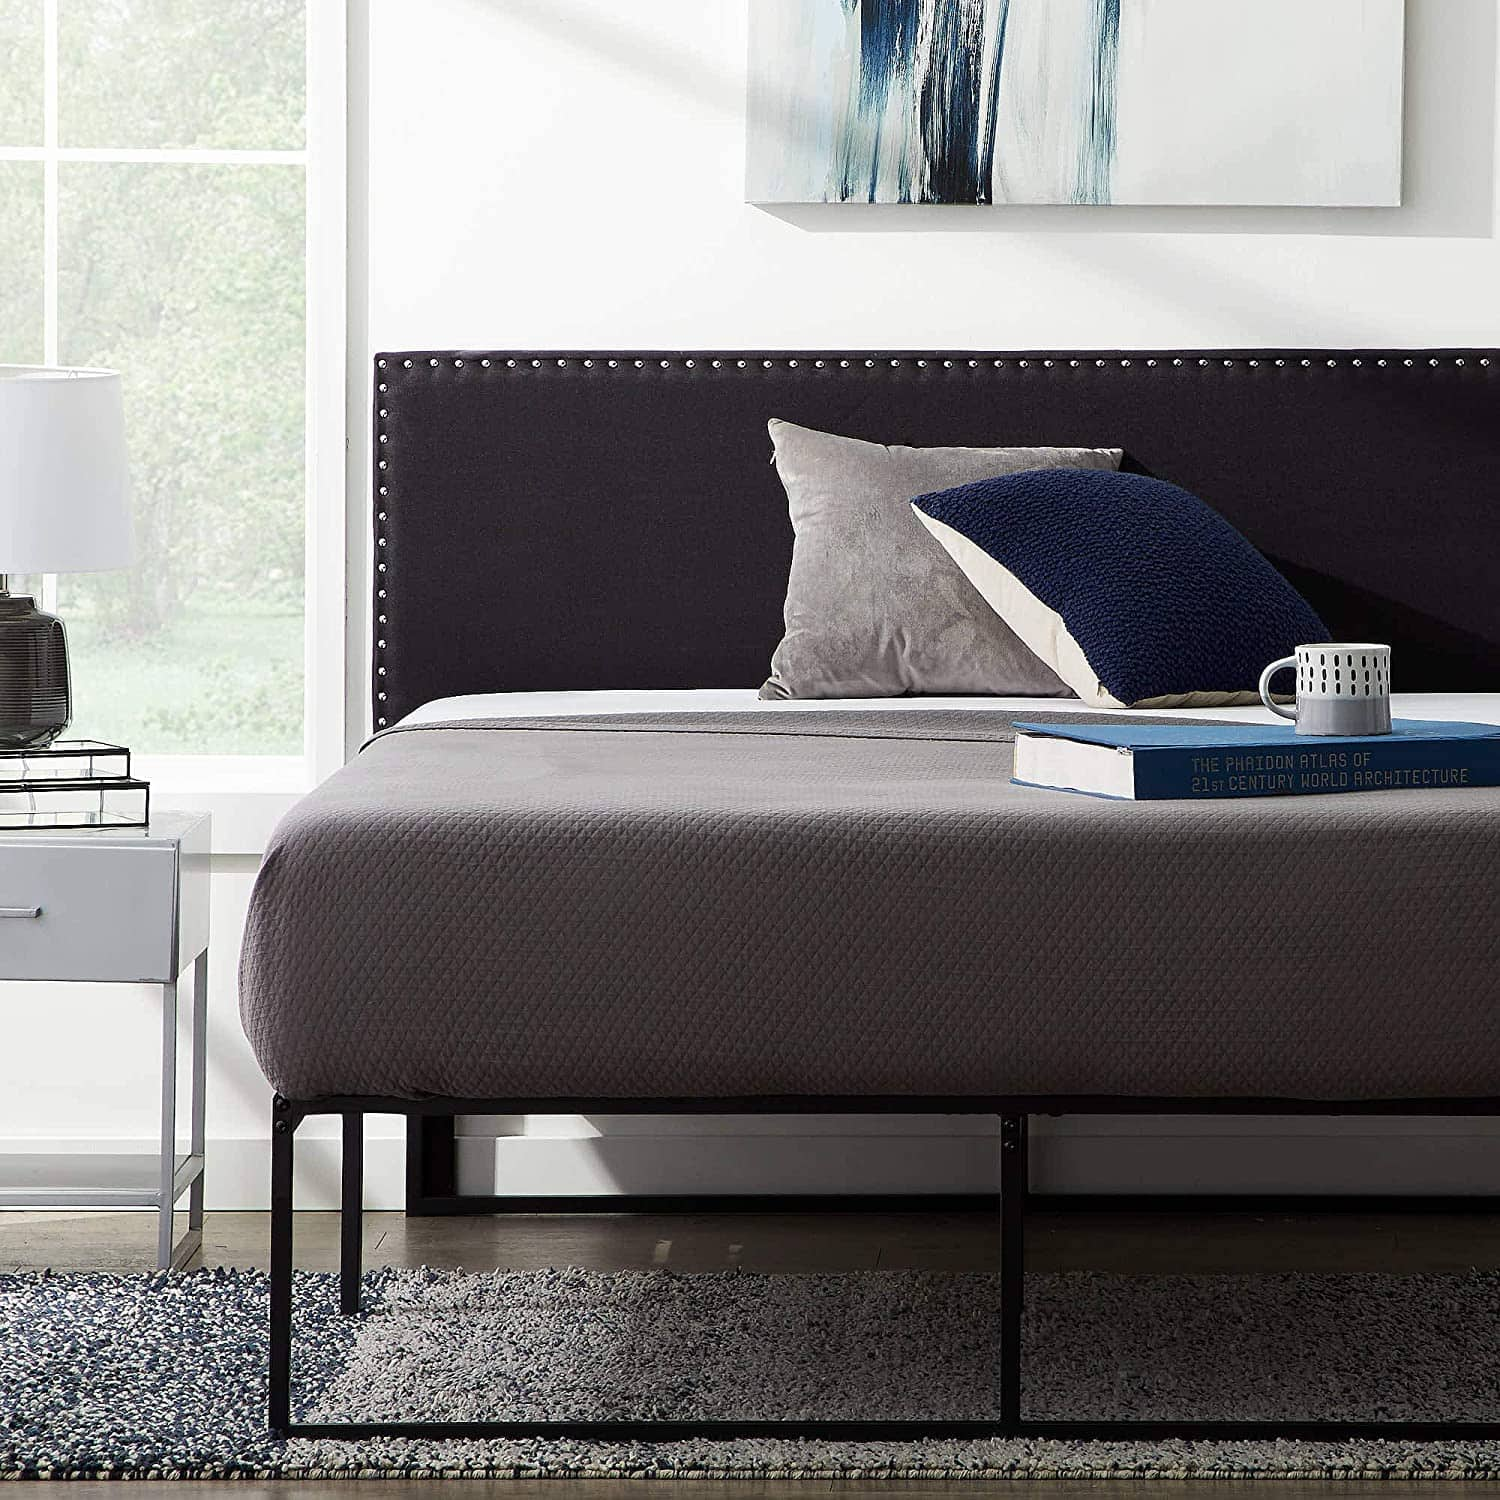 LUCID Upholstered Mid-Rise Headboard with Nailhead Trim Platform $89.99